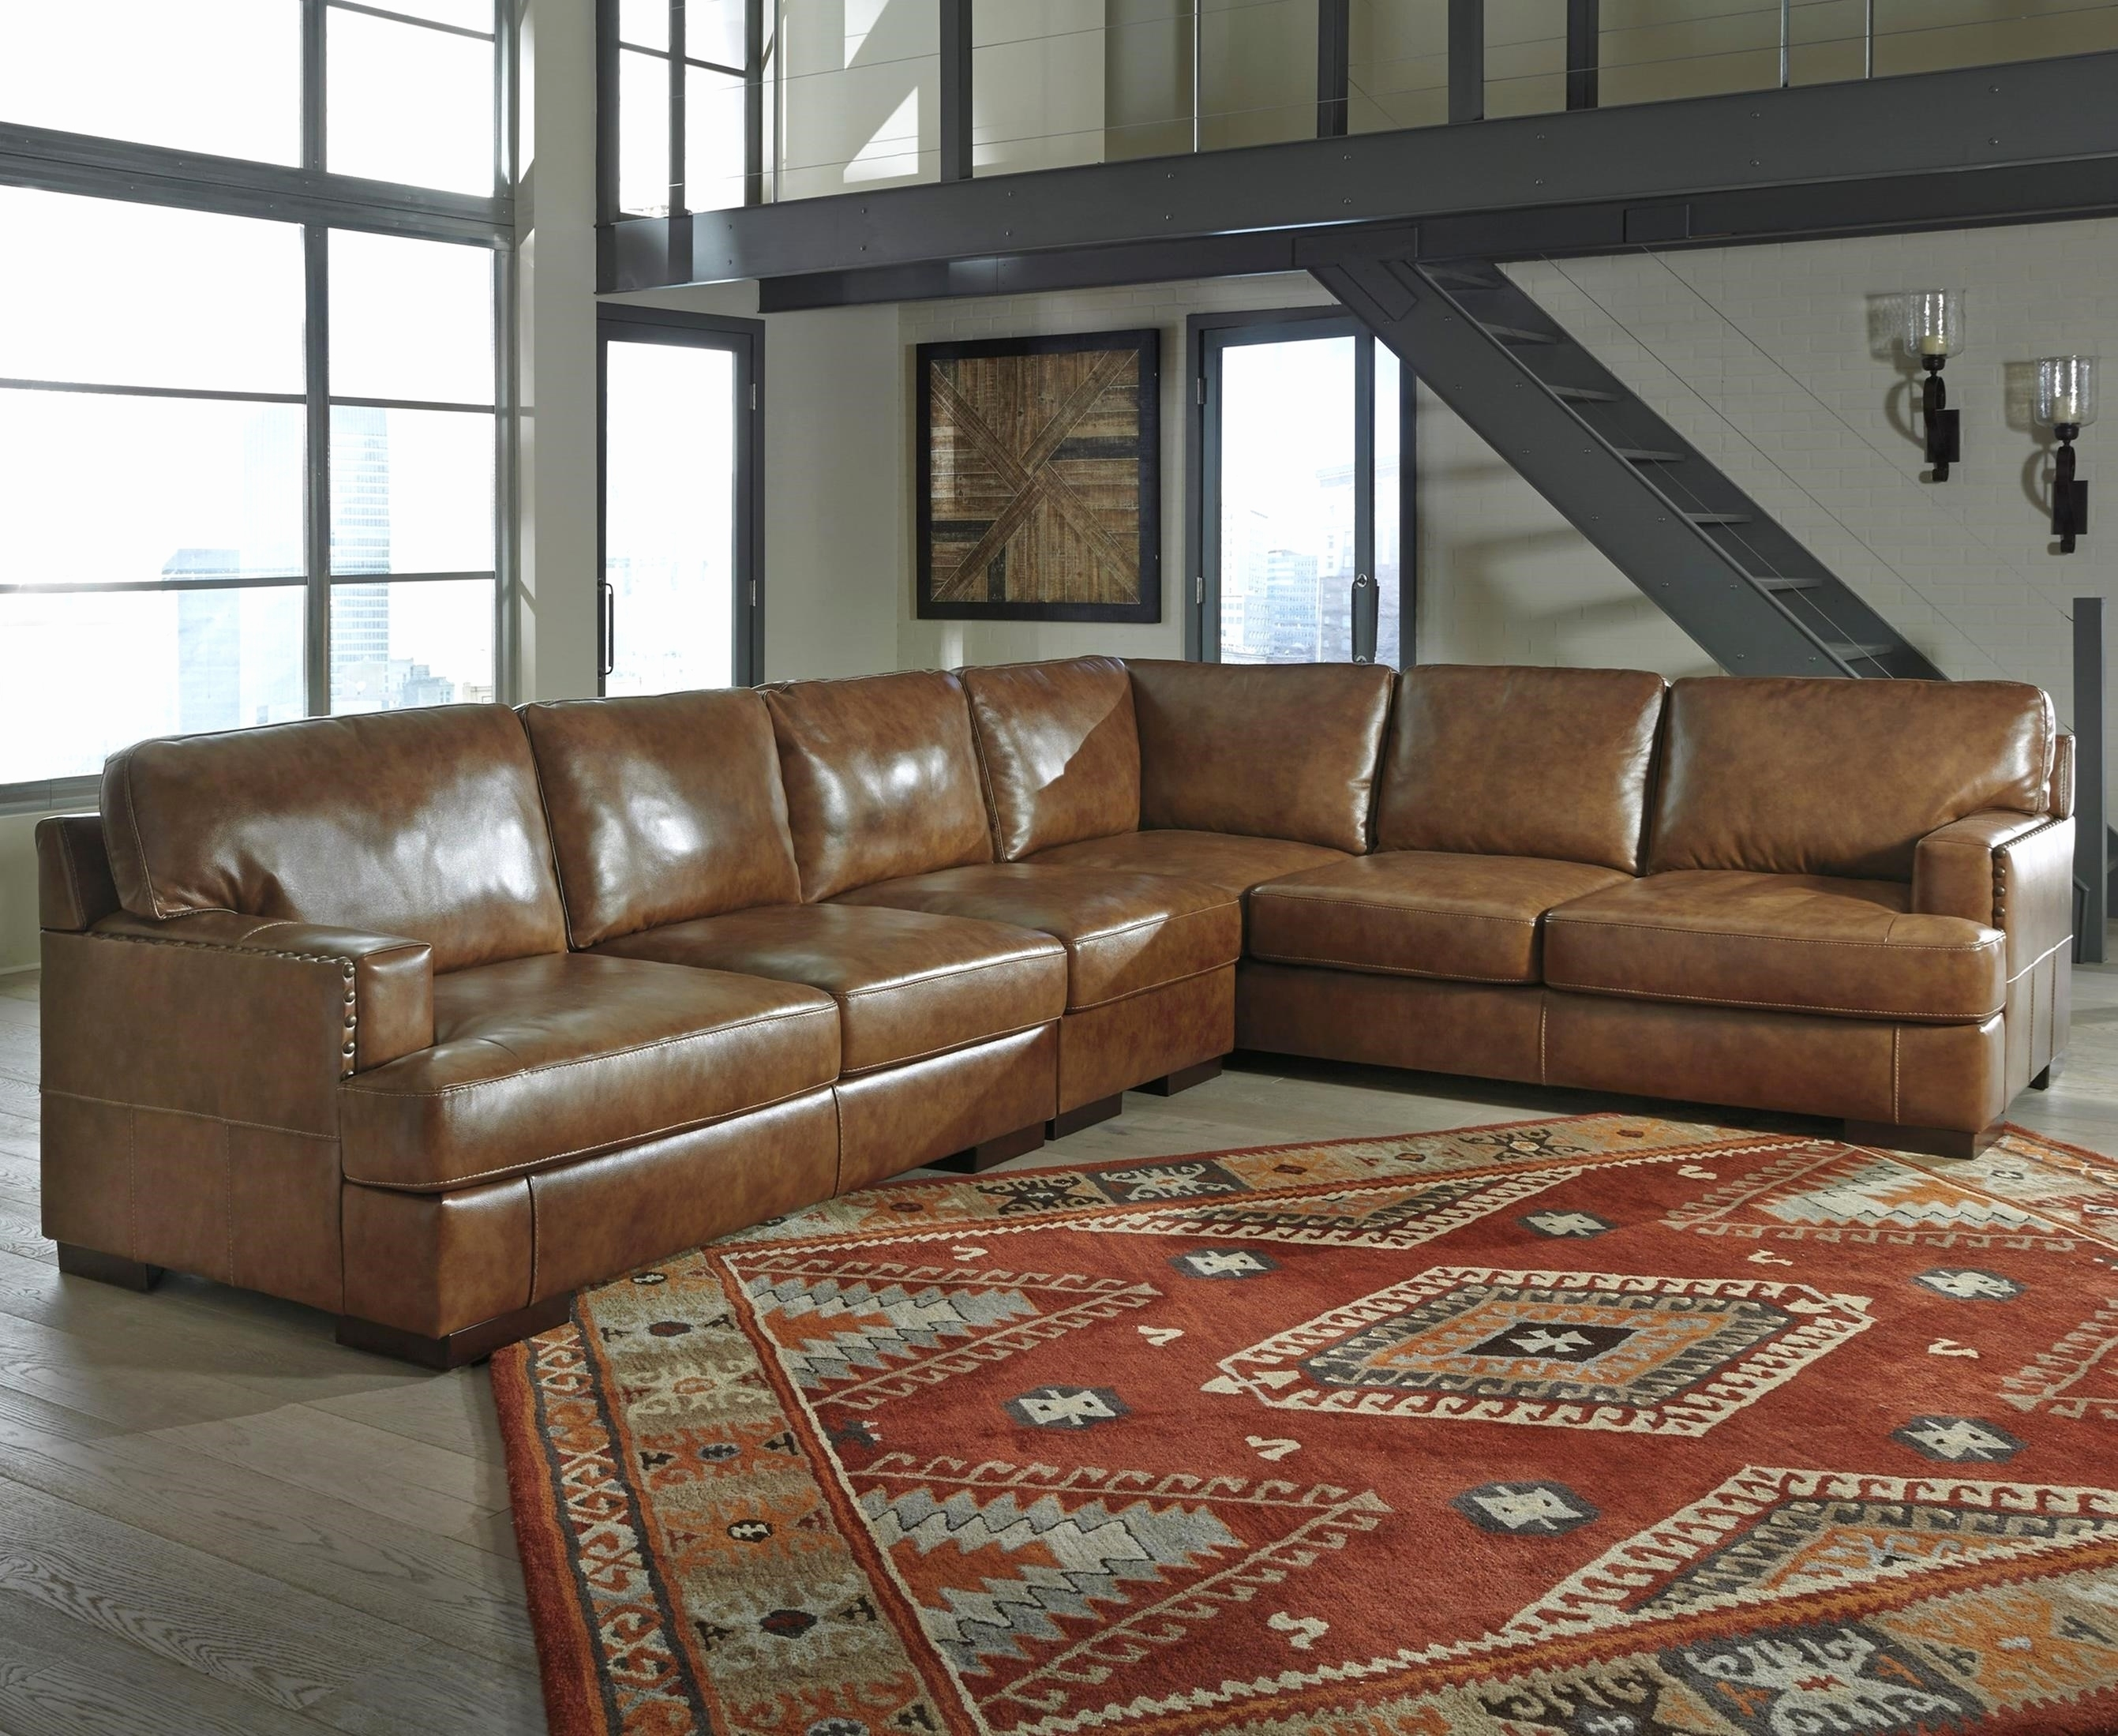 Lovely 3 Piece Corner Sectional Sofa 2018 – Couches And Sofas Ideas Inside Grand Furniture Sectional Sofas (Image 7 of 10)